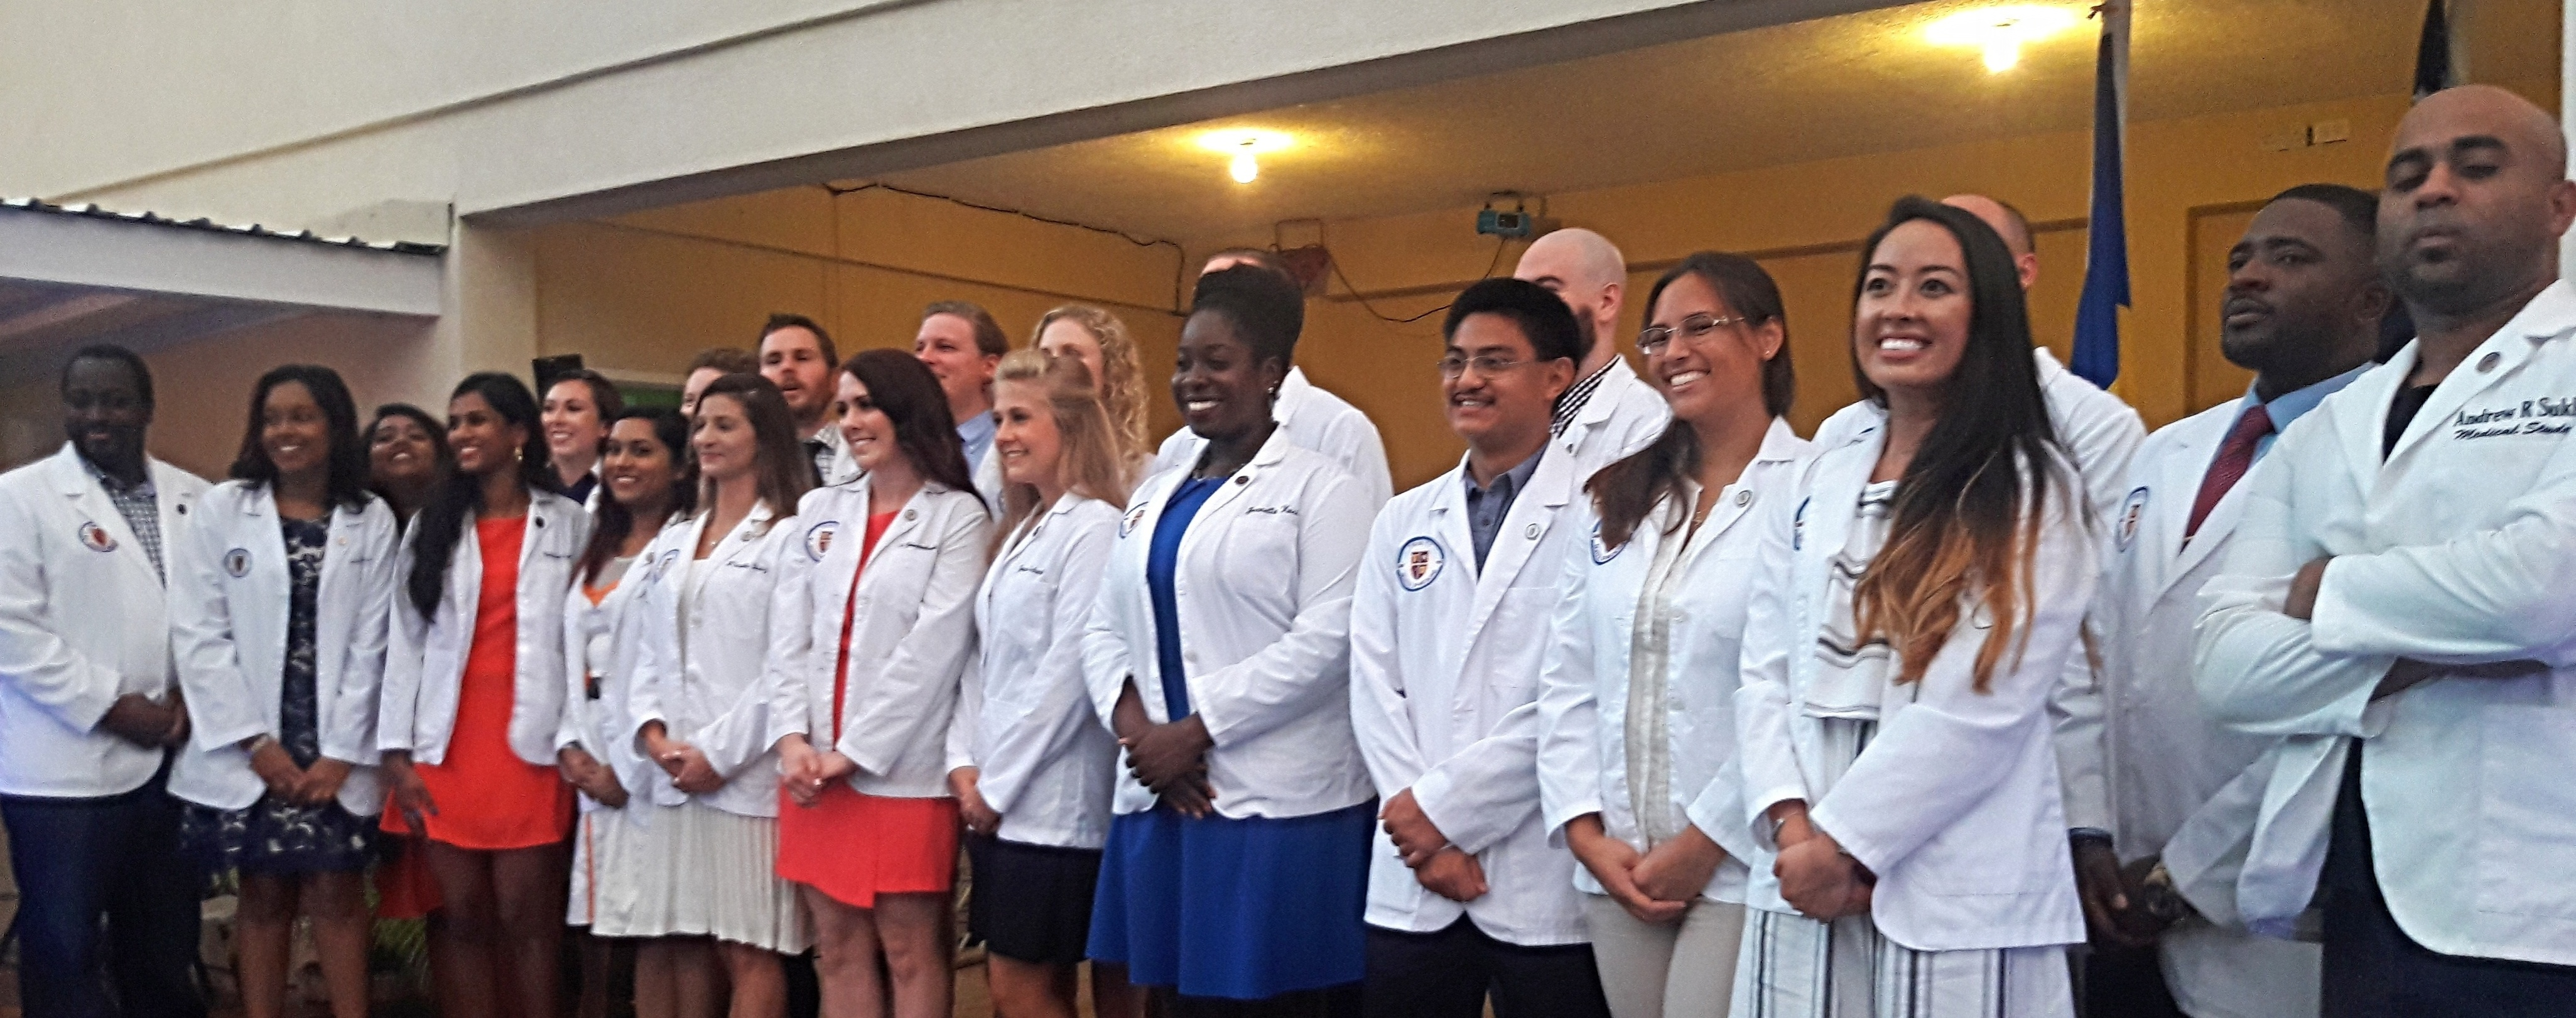 Trinity School of Medicine Holds August 5th Term Ceremony